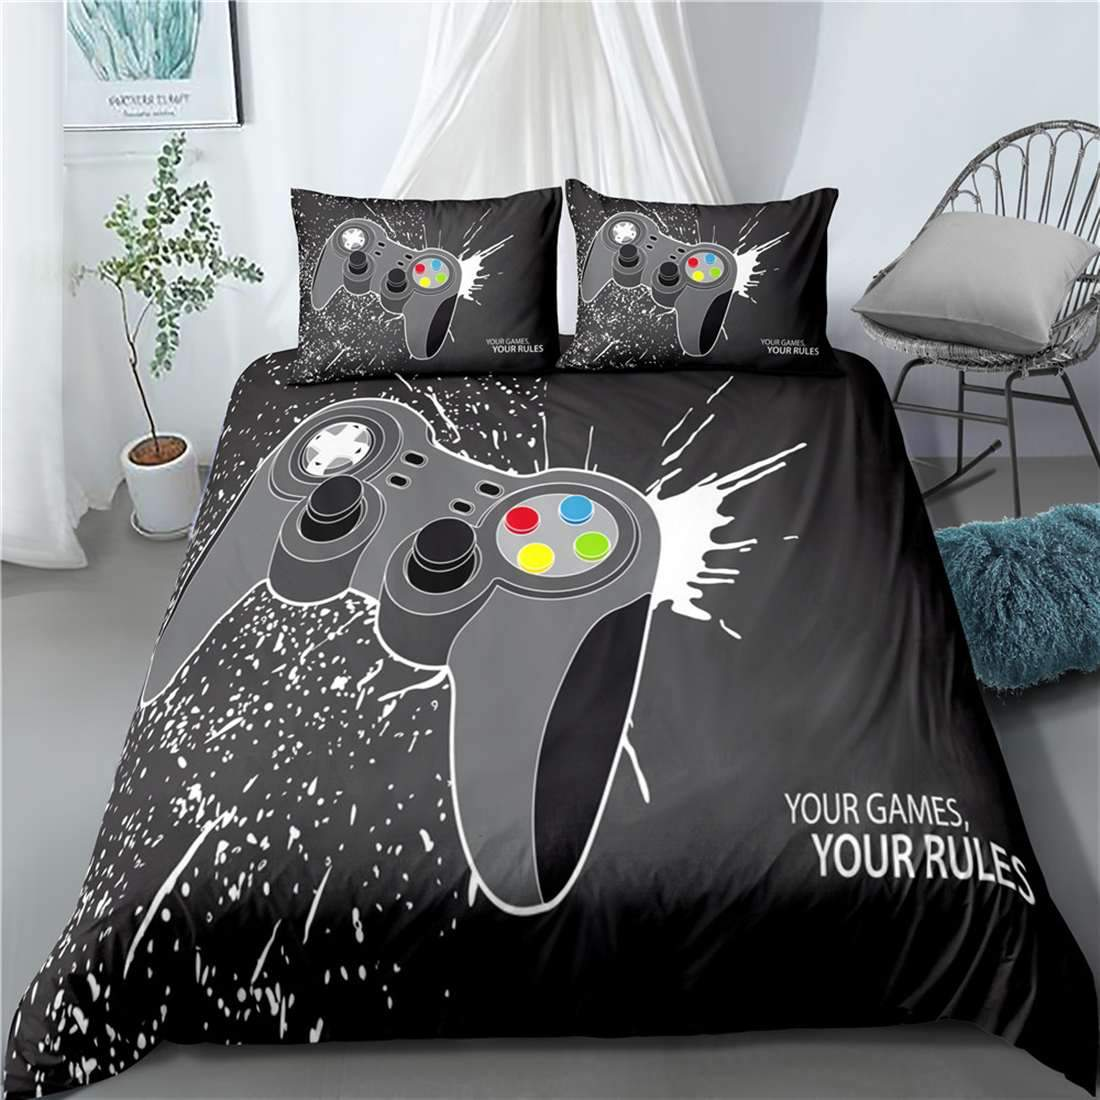 Bedding Sets Gamepad